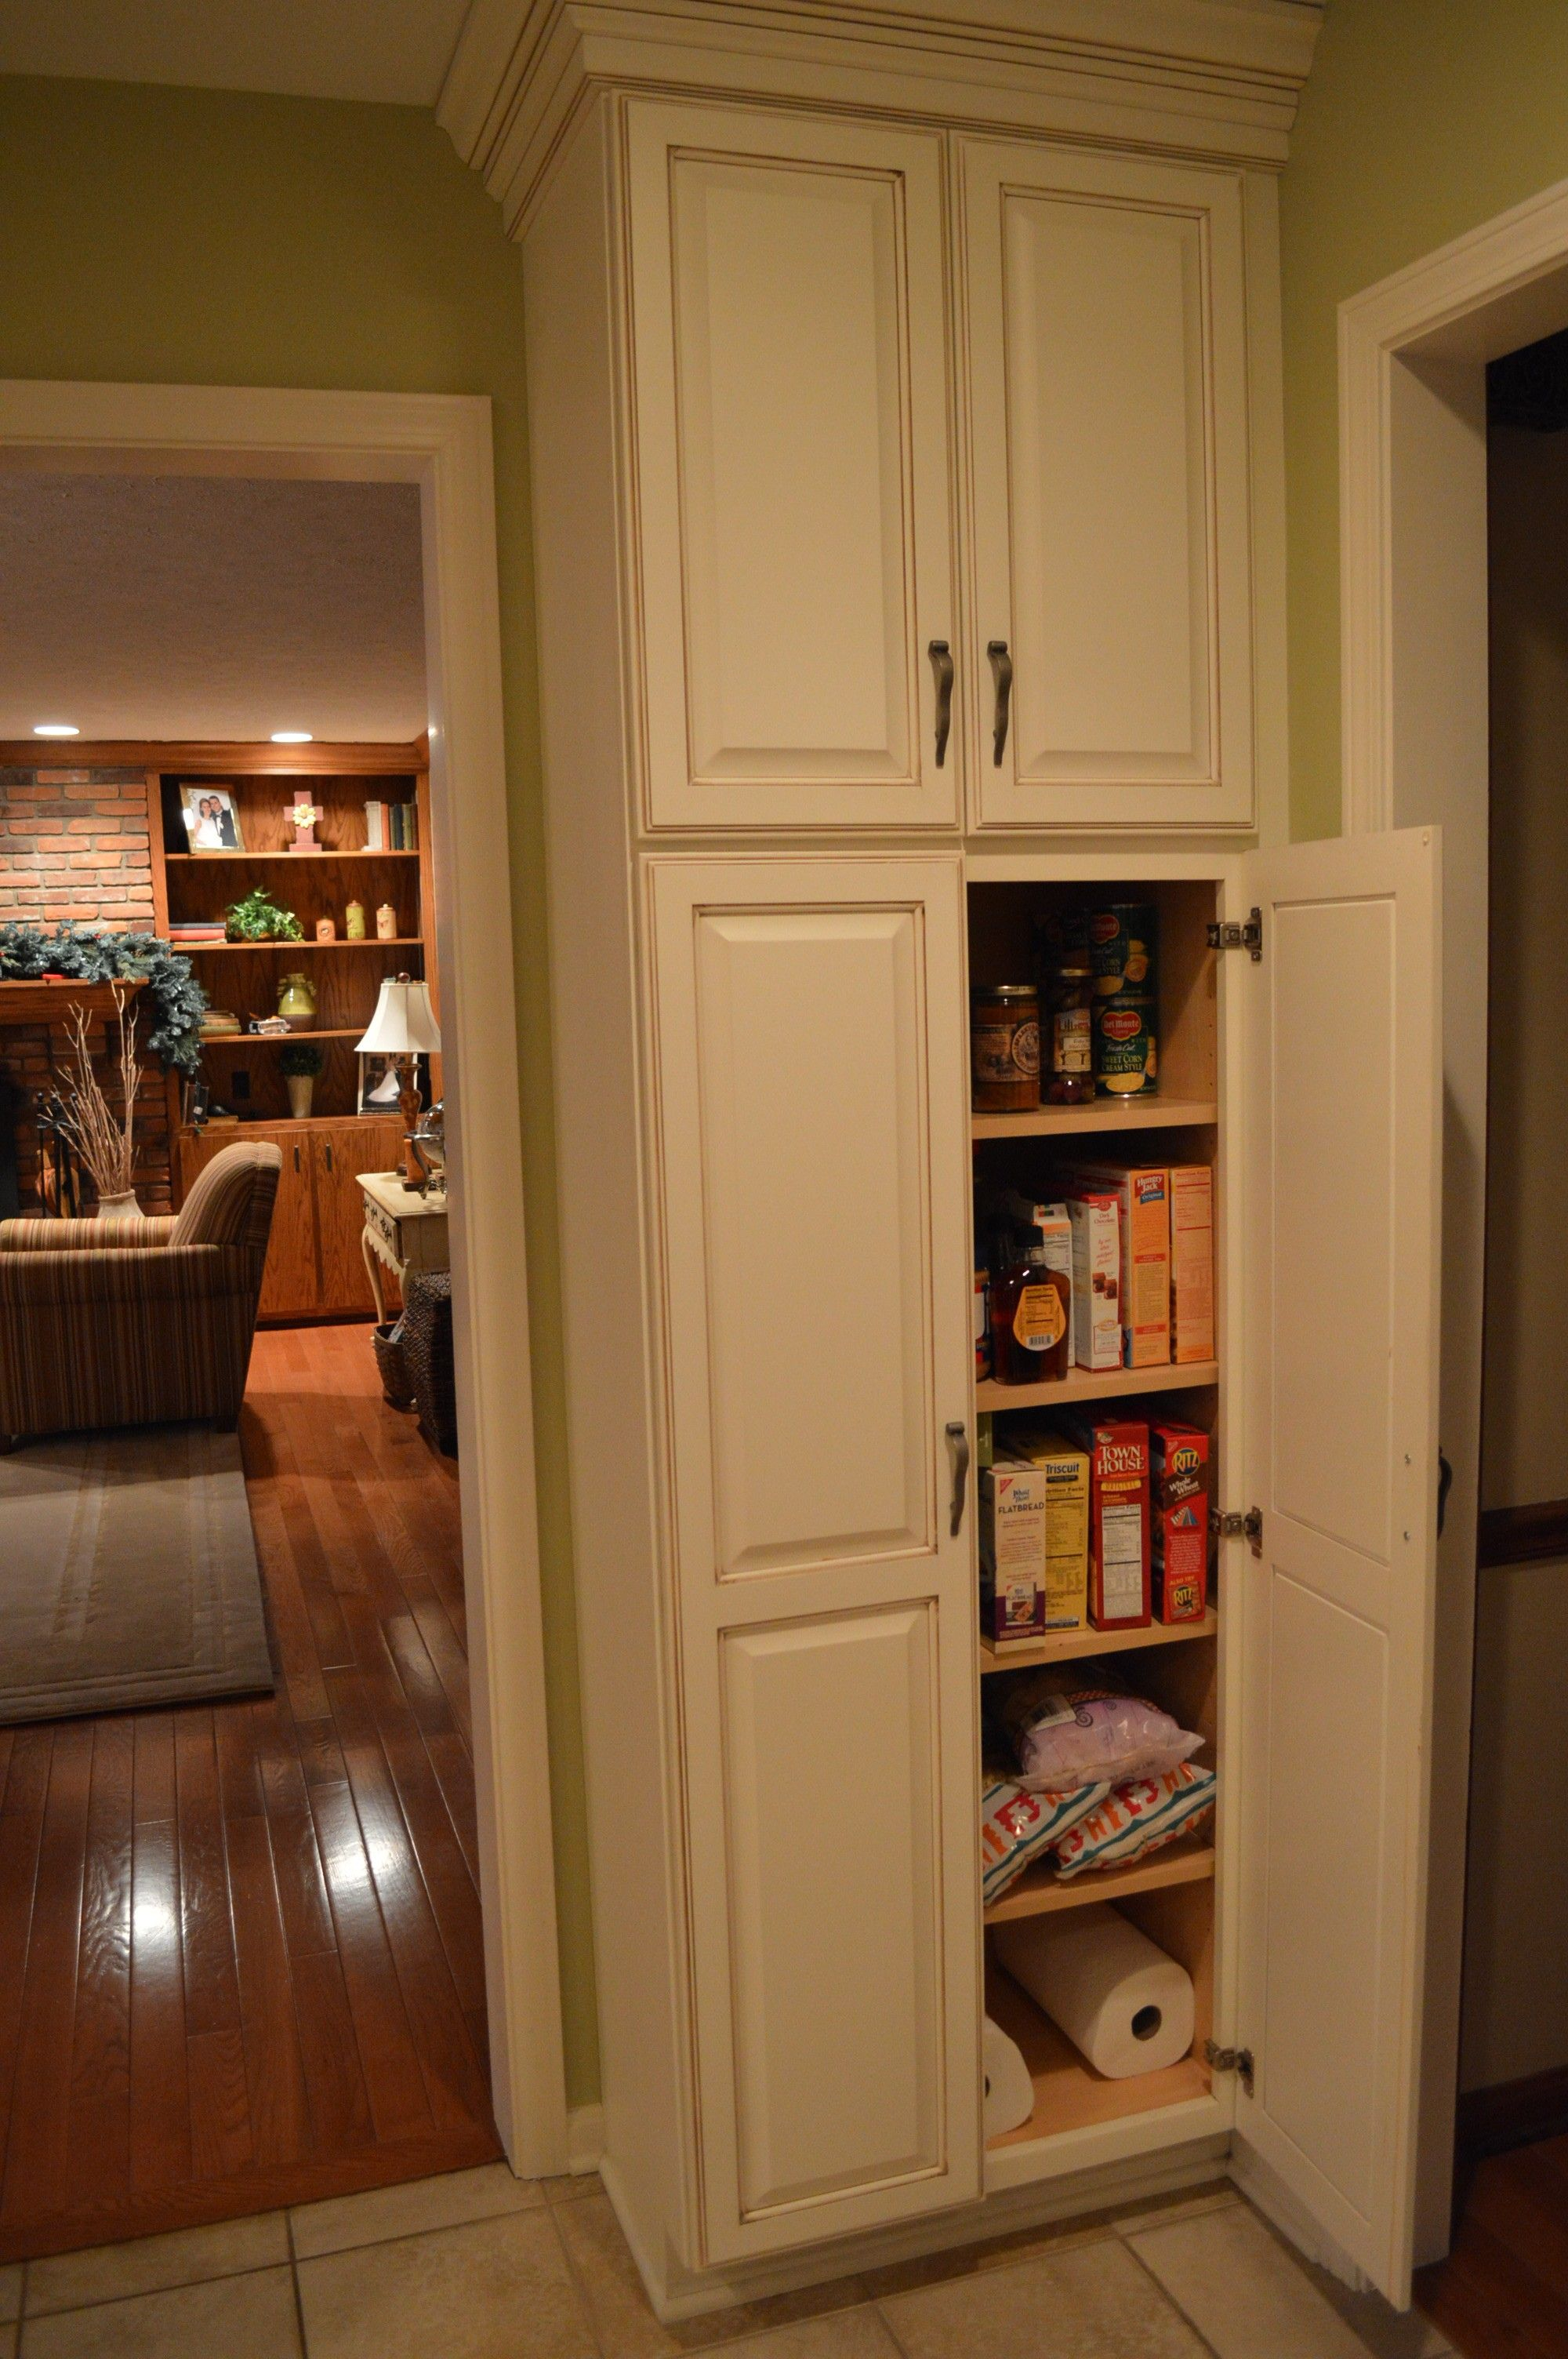 White Wooden Tall Narrow Pantry Cabinet With 4 Maple Wood Shelves ...